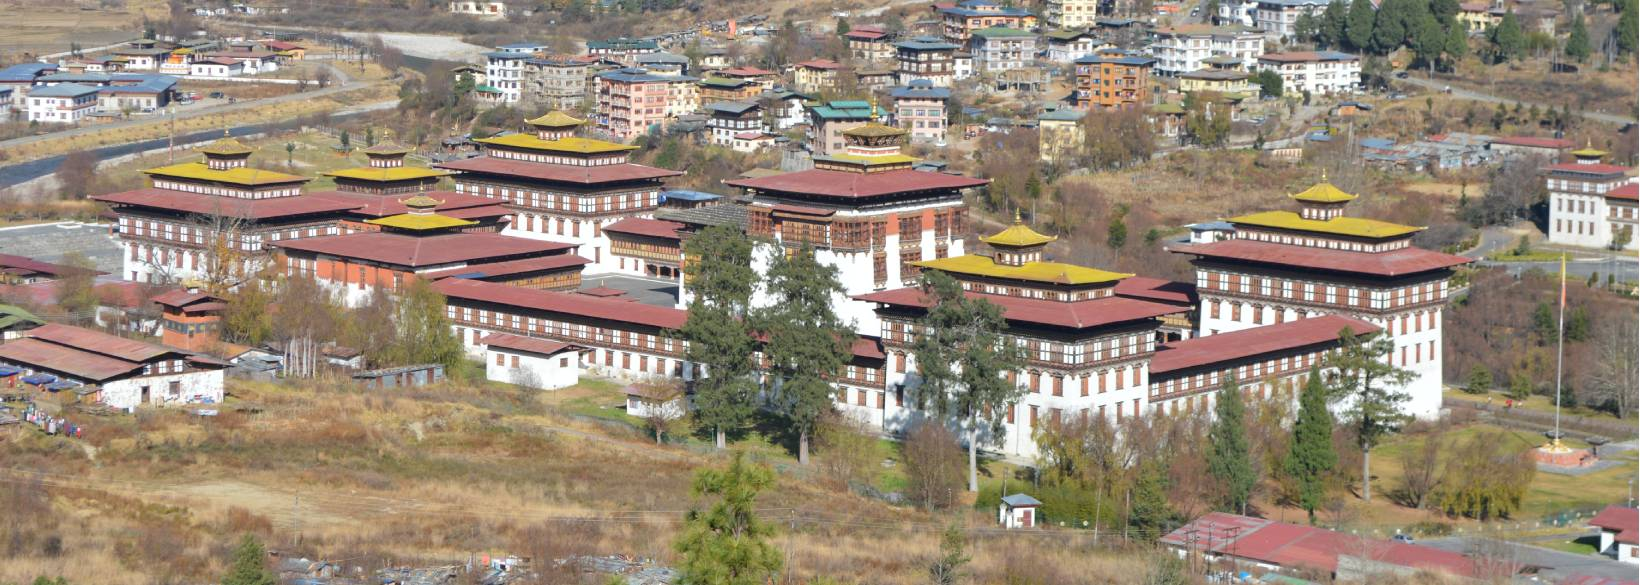 6Nights 7Days Himalayan Splendor Bhutan Tour – Fly in/out